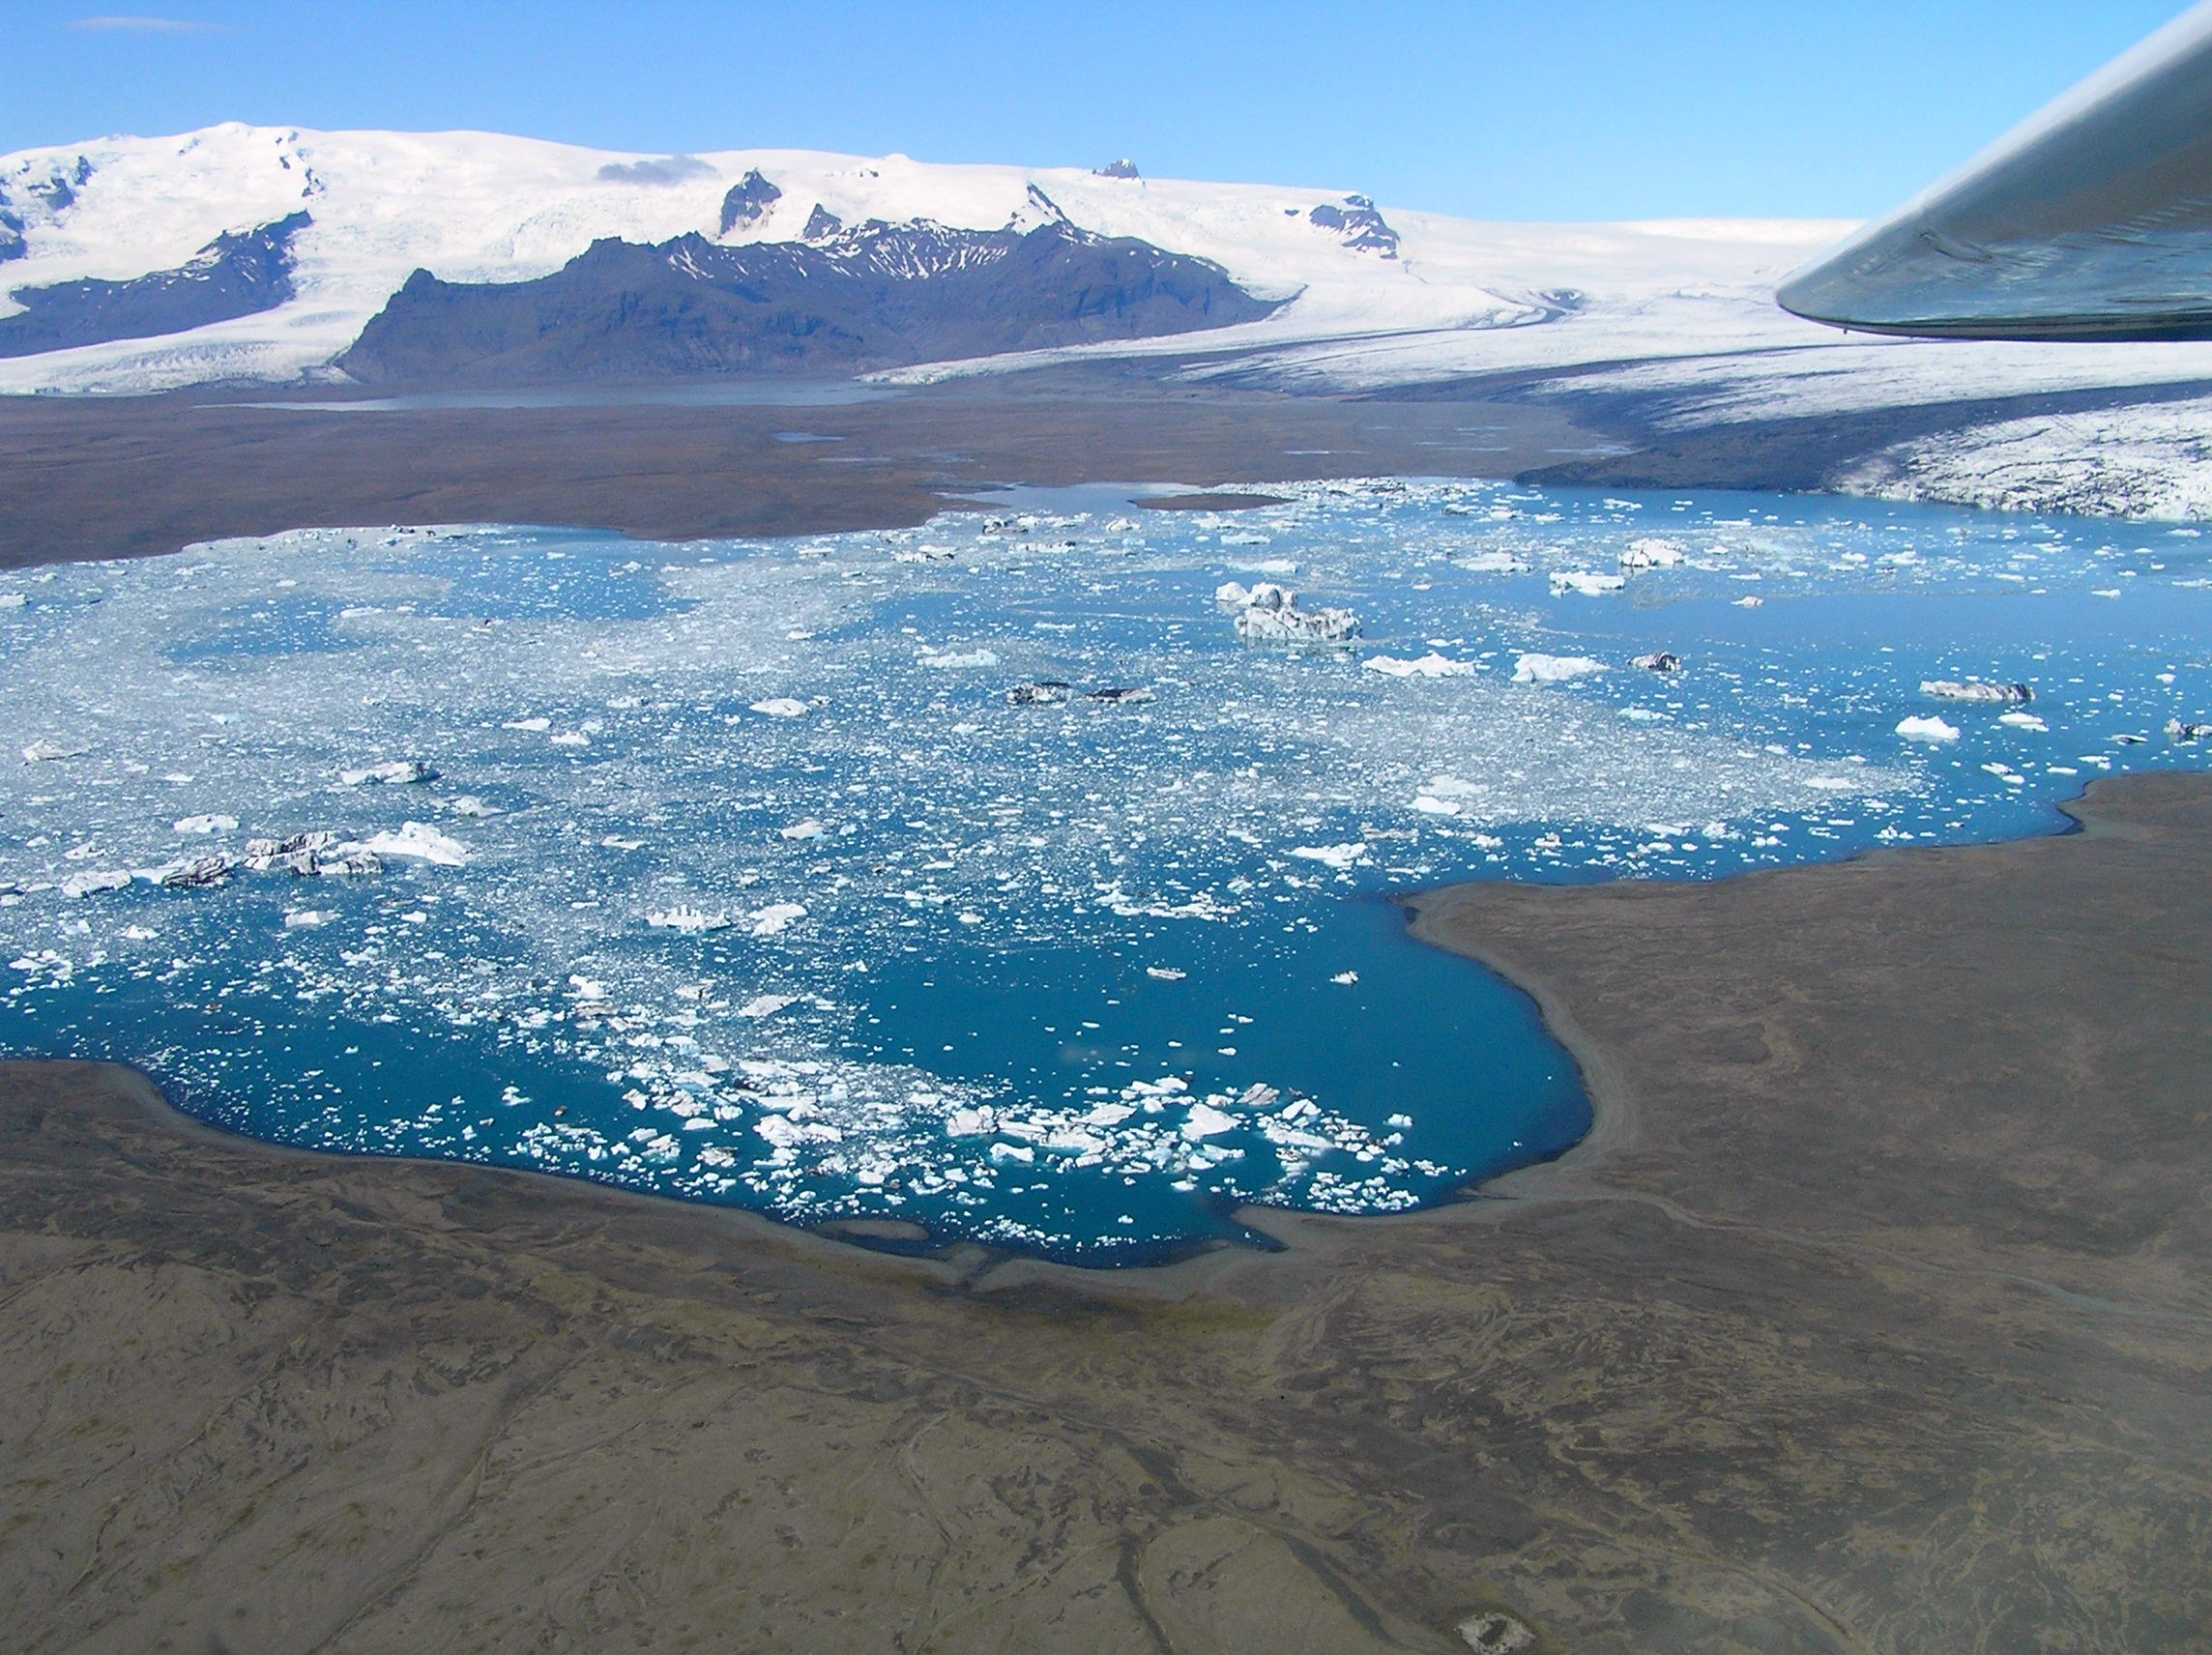 With the ever growing influence of climate change, Iceland's glacial lagoons are increasing in size every year.